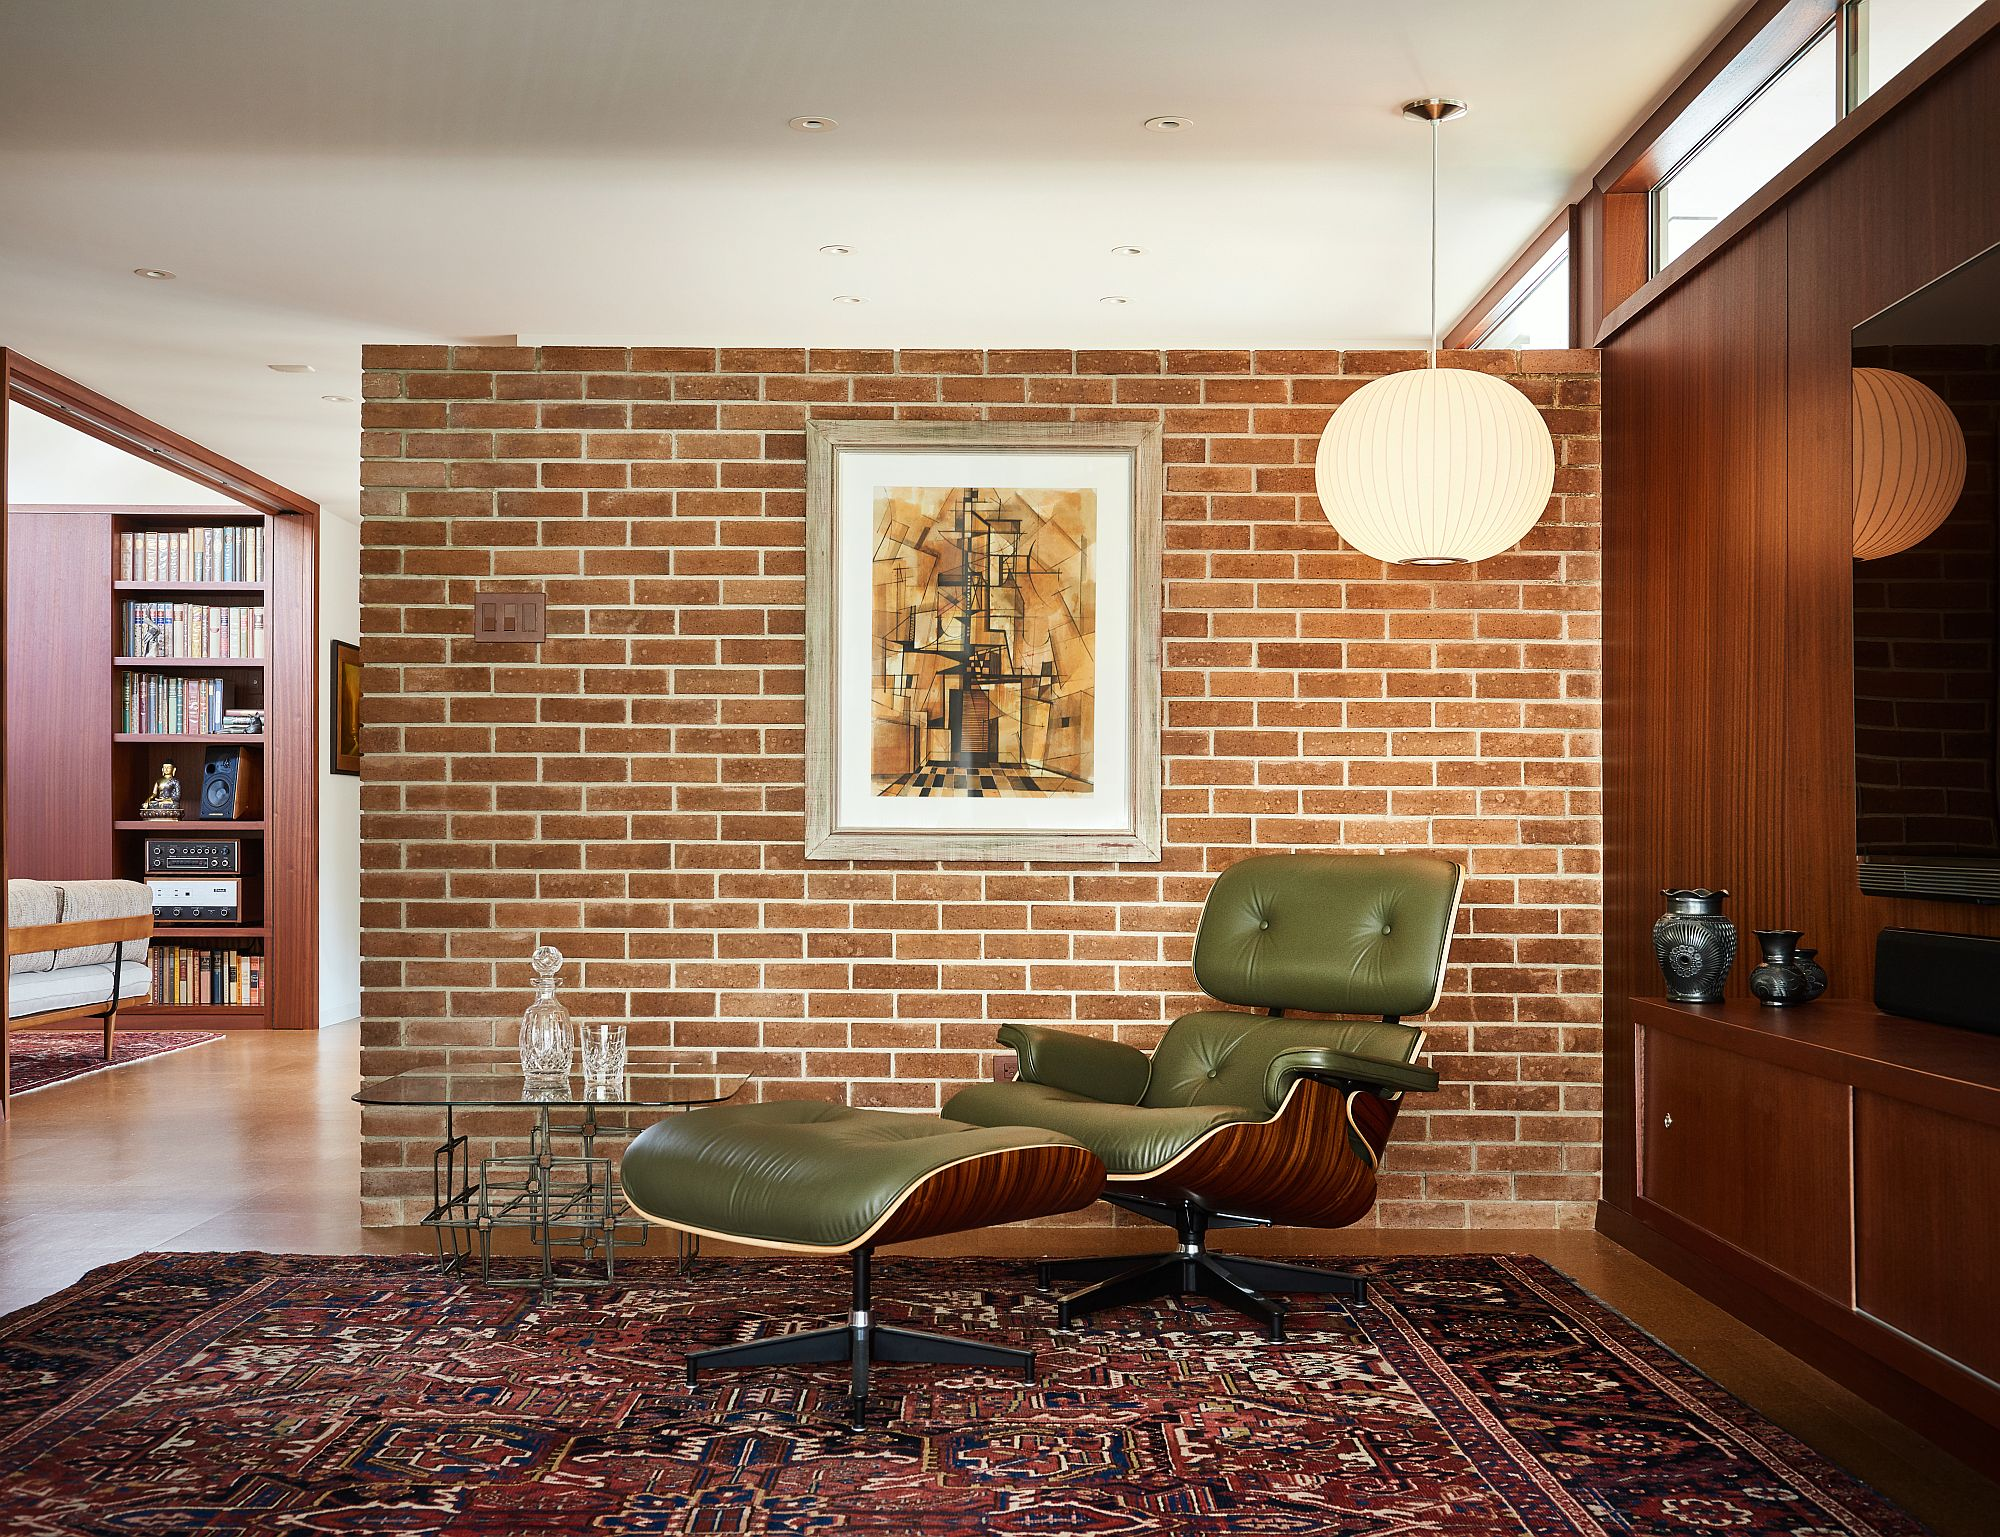 Eames Lounger in the living room accentuates the appeal of the living space